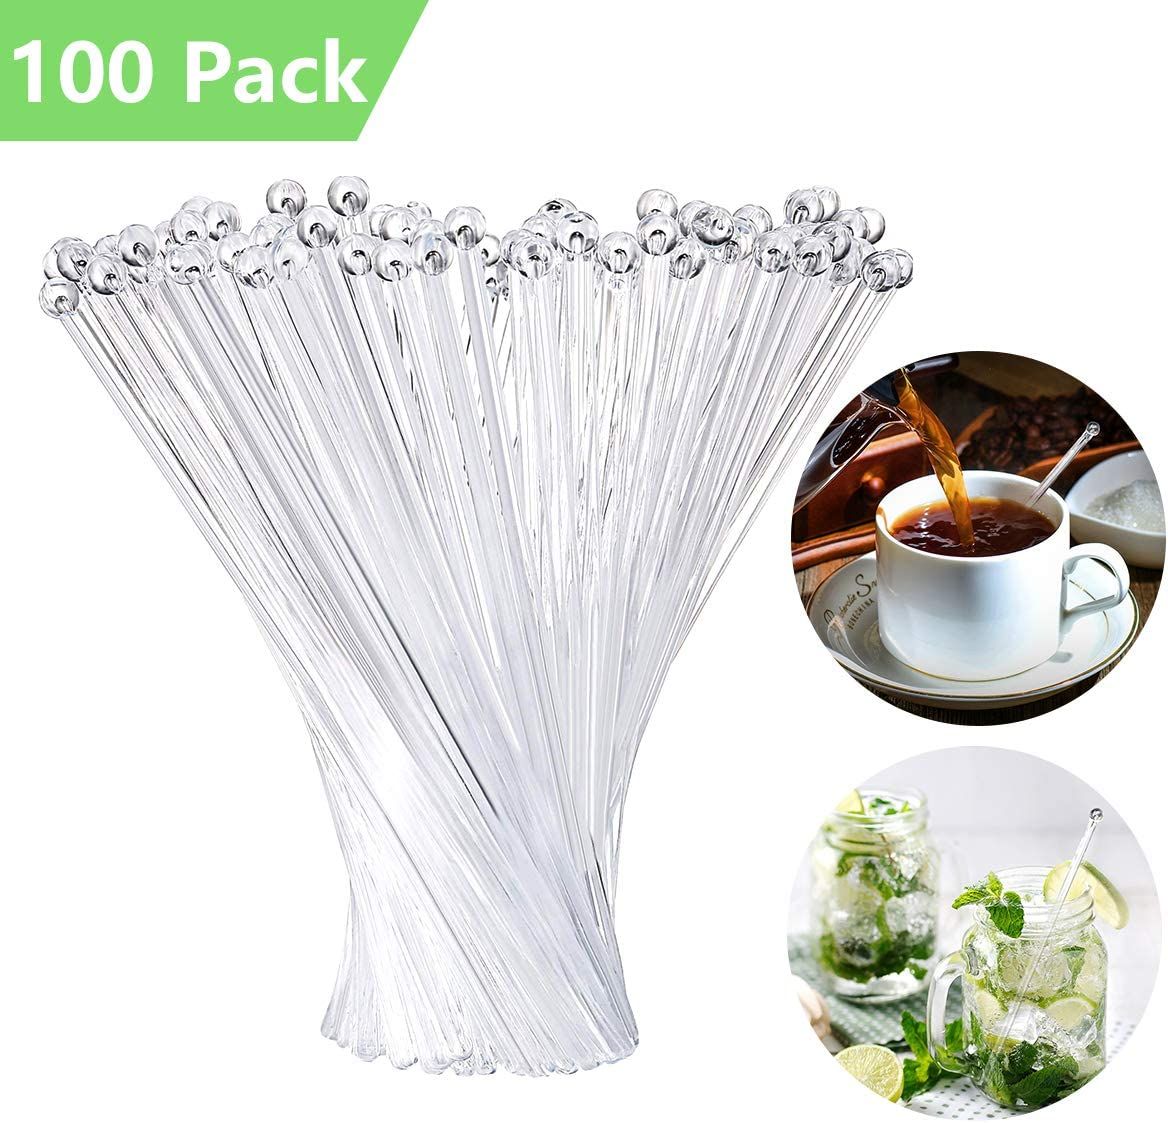 Swizzle Sticks Plastic Round Top Stir Stirrers Reusable or Disposable for Coffee Beverage Cocktail Tea 7.4 Inch